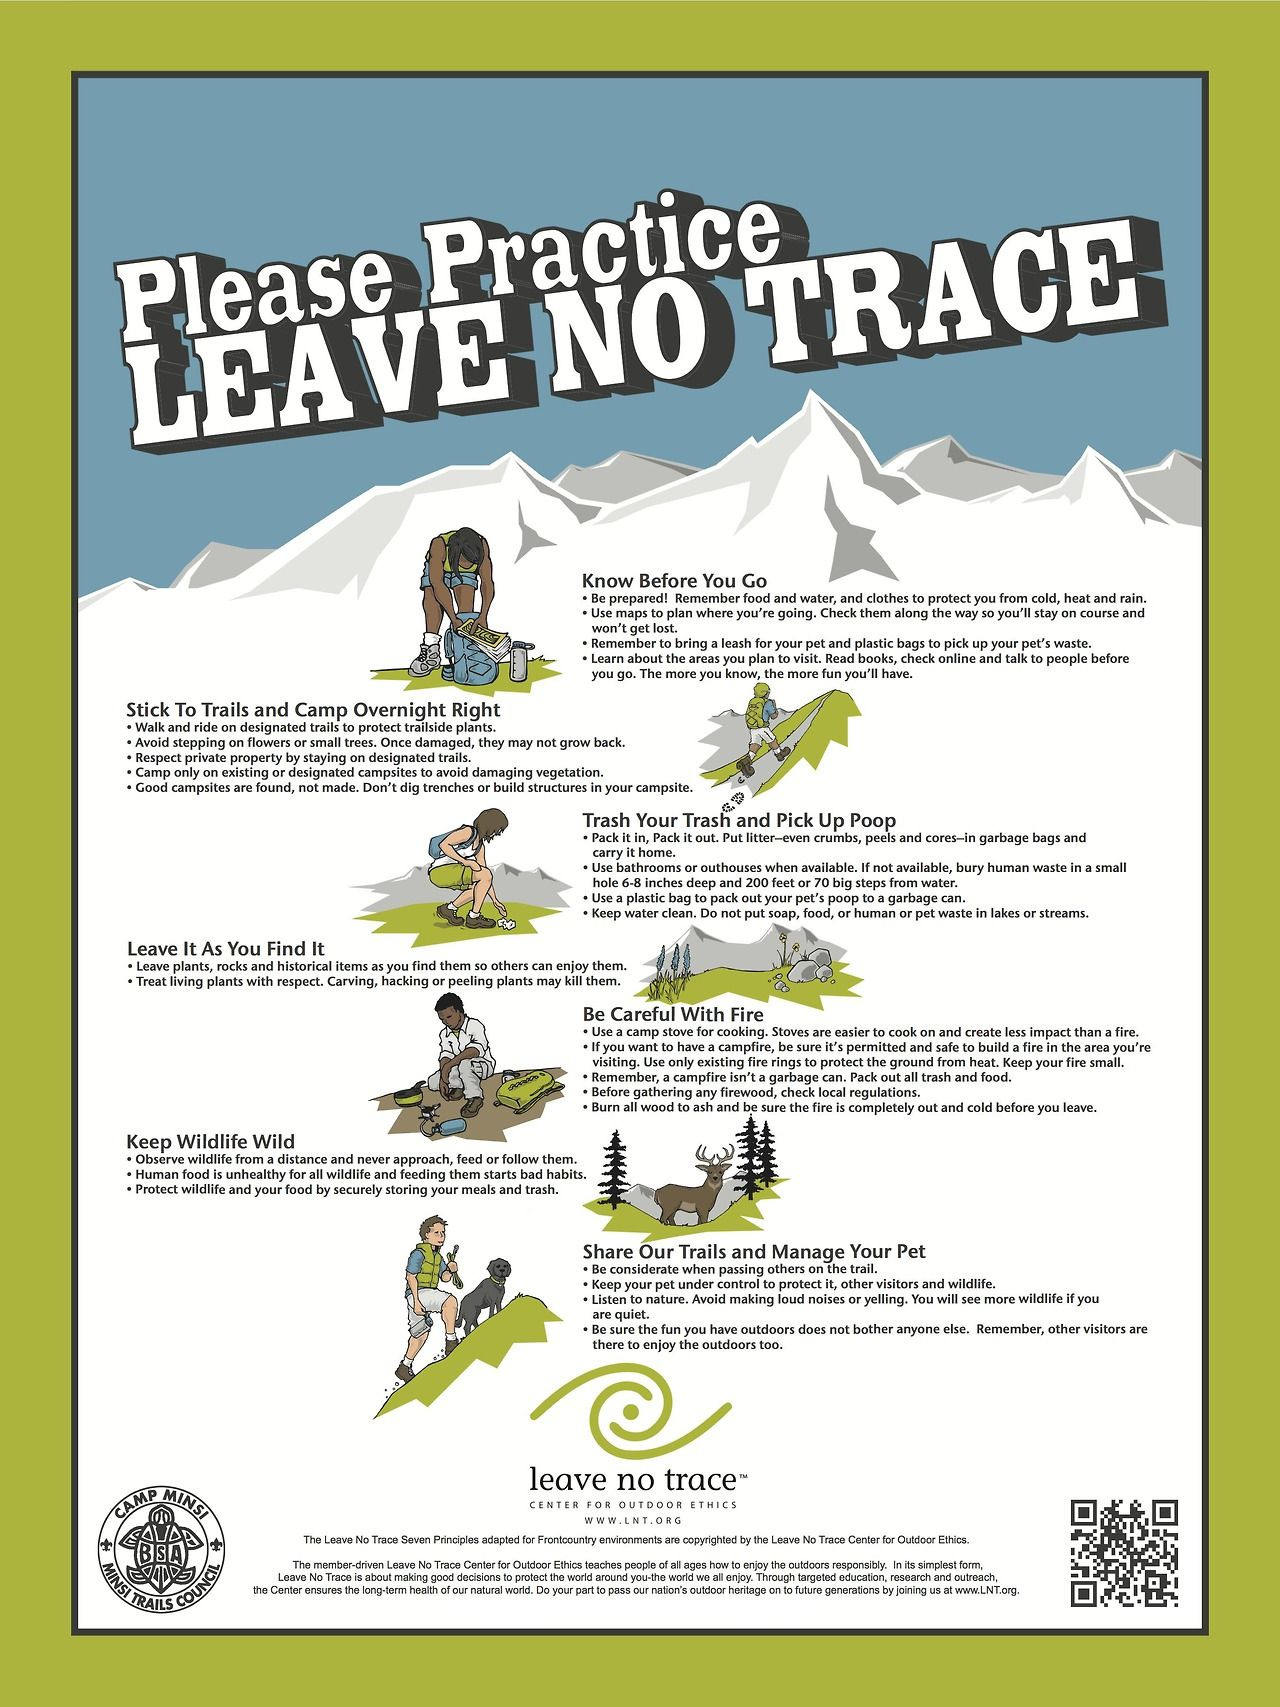 Pin On Leave No Trace